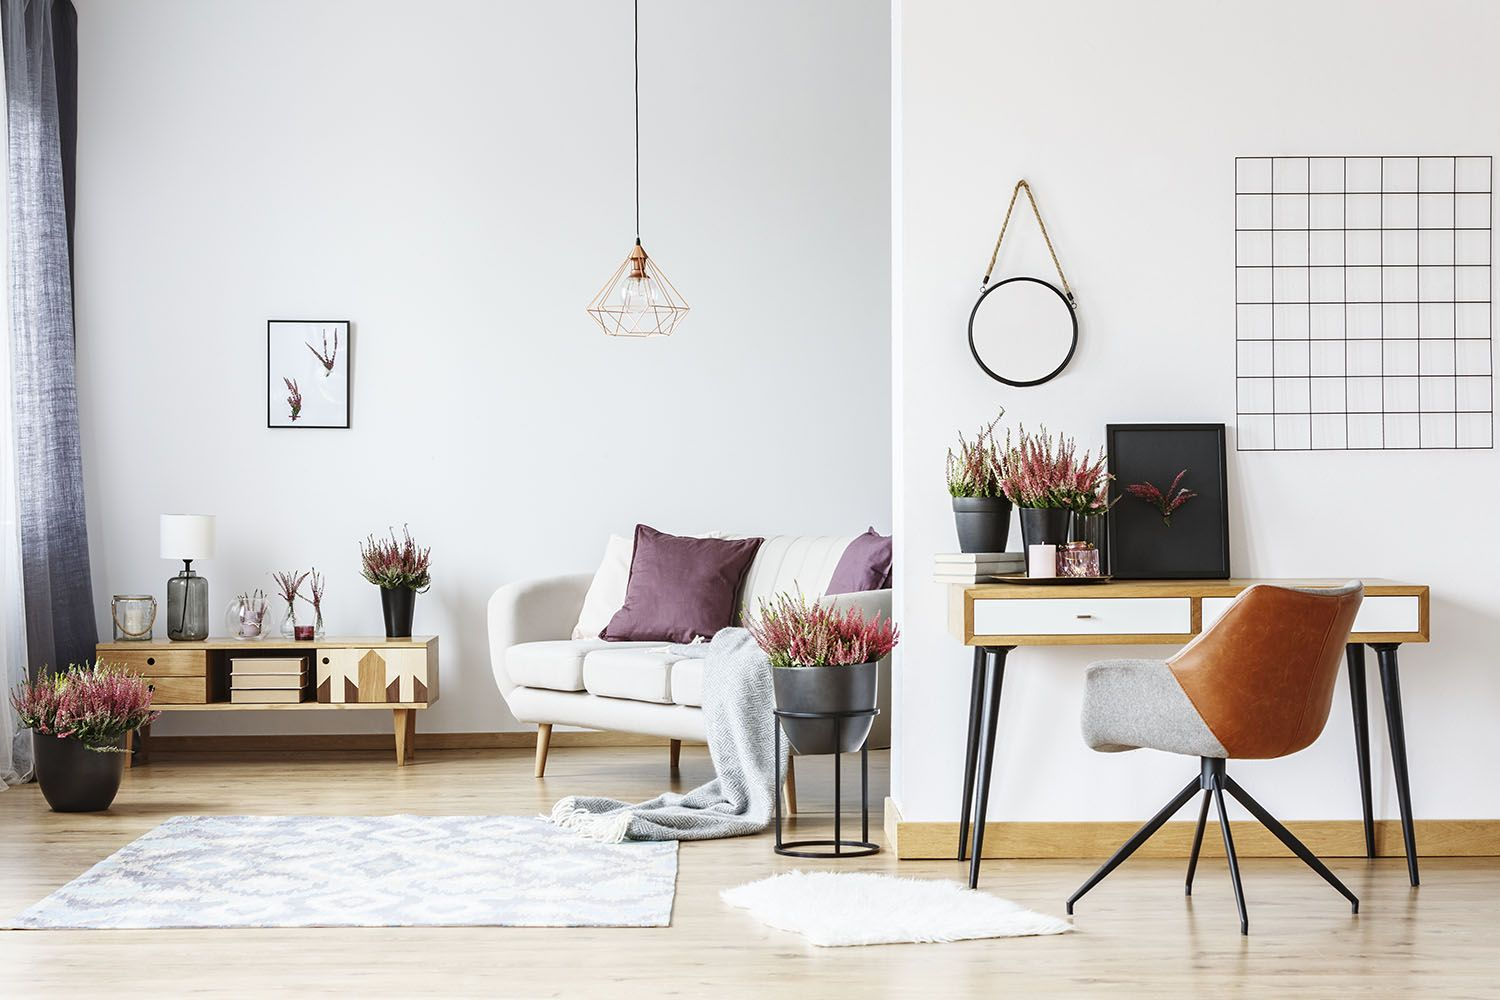 6 simple styling ideas that change a room in minutes (With ...